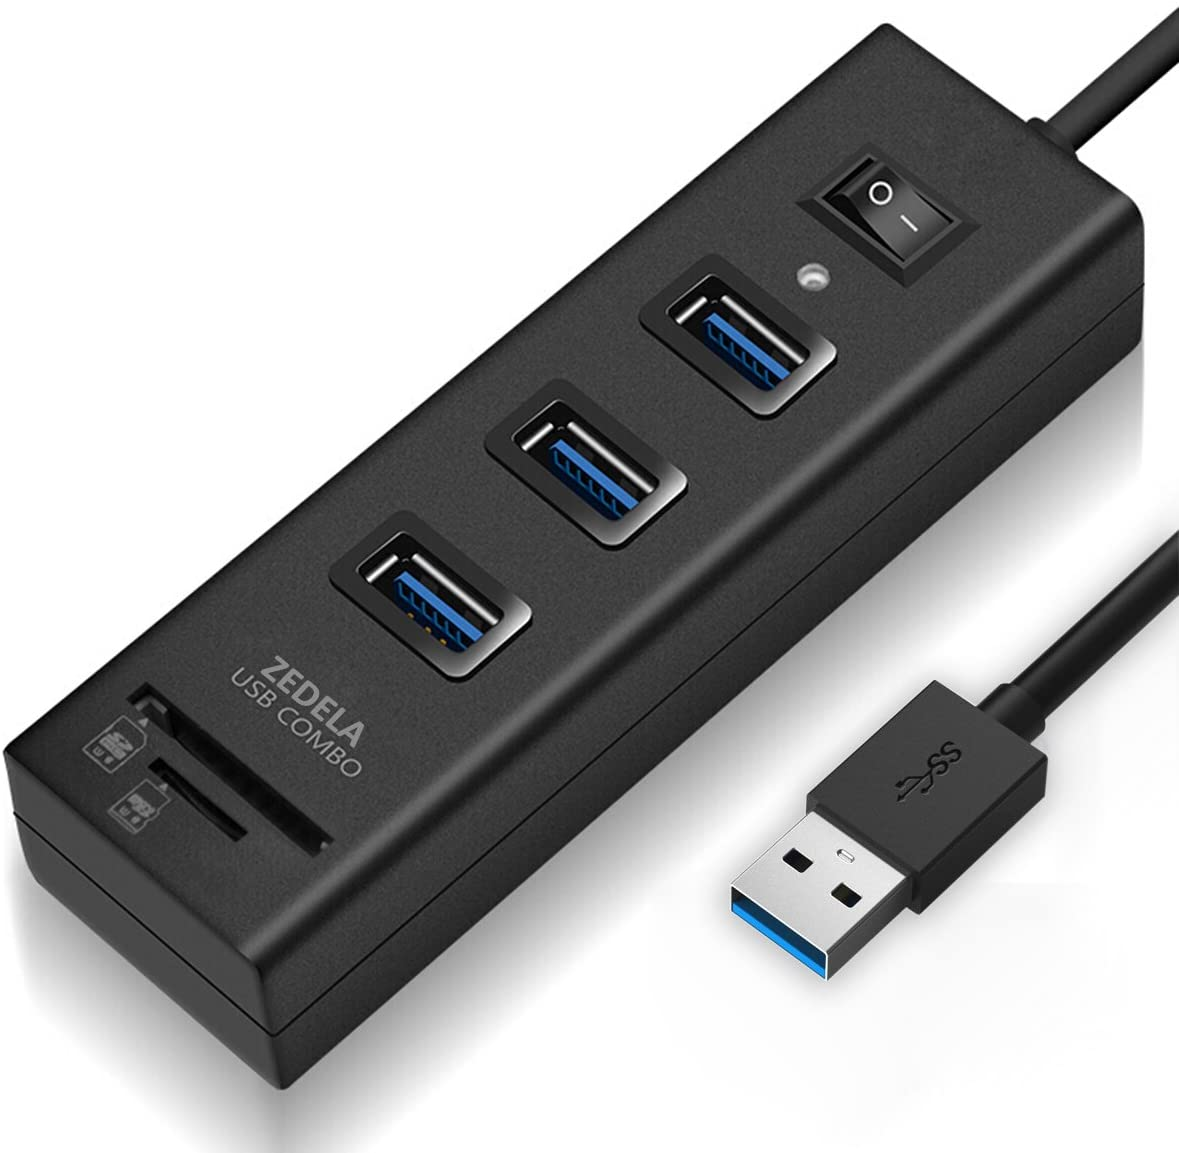 USB 3.0 Hub, Zedela USB Hub 3.0 with SD Card Reader (3 USB 3.0 Port Adapter + SD/TF/Micro SD Card Reader), 5Gbps SD to USB Adapter for Computer(Windows,iMac,MacBook Pro/Air), IdeaPad-with Power Switc